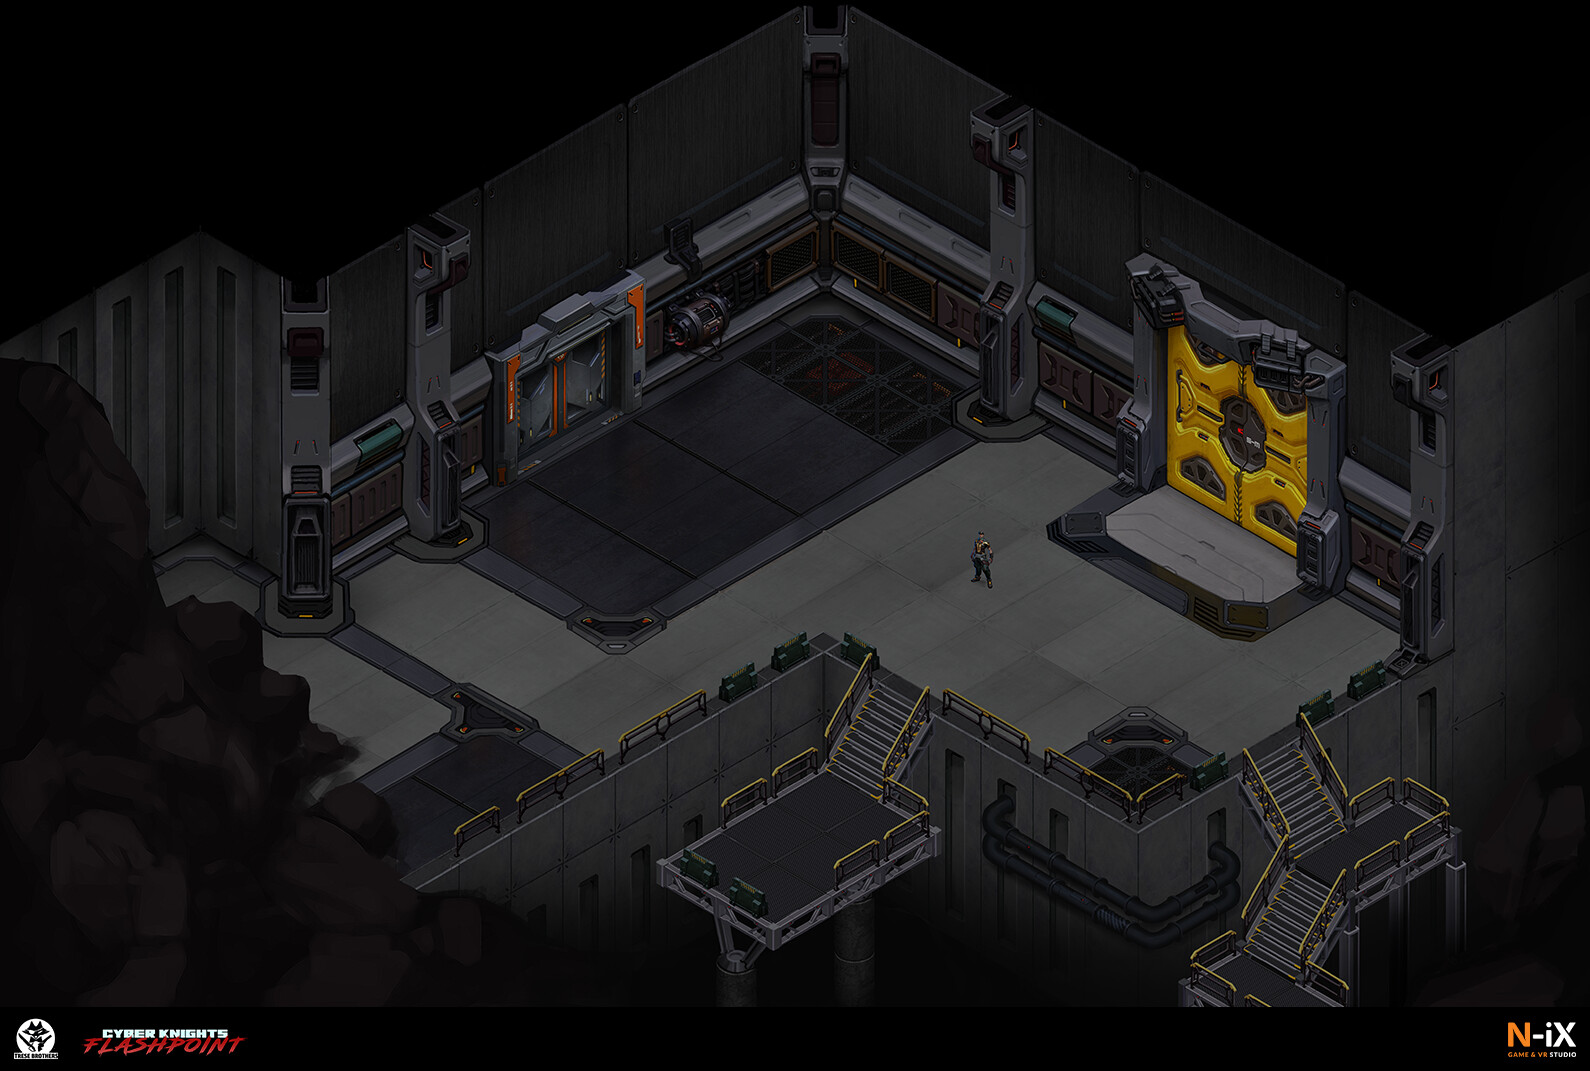 Cyber Knight: Flashpoint Environment